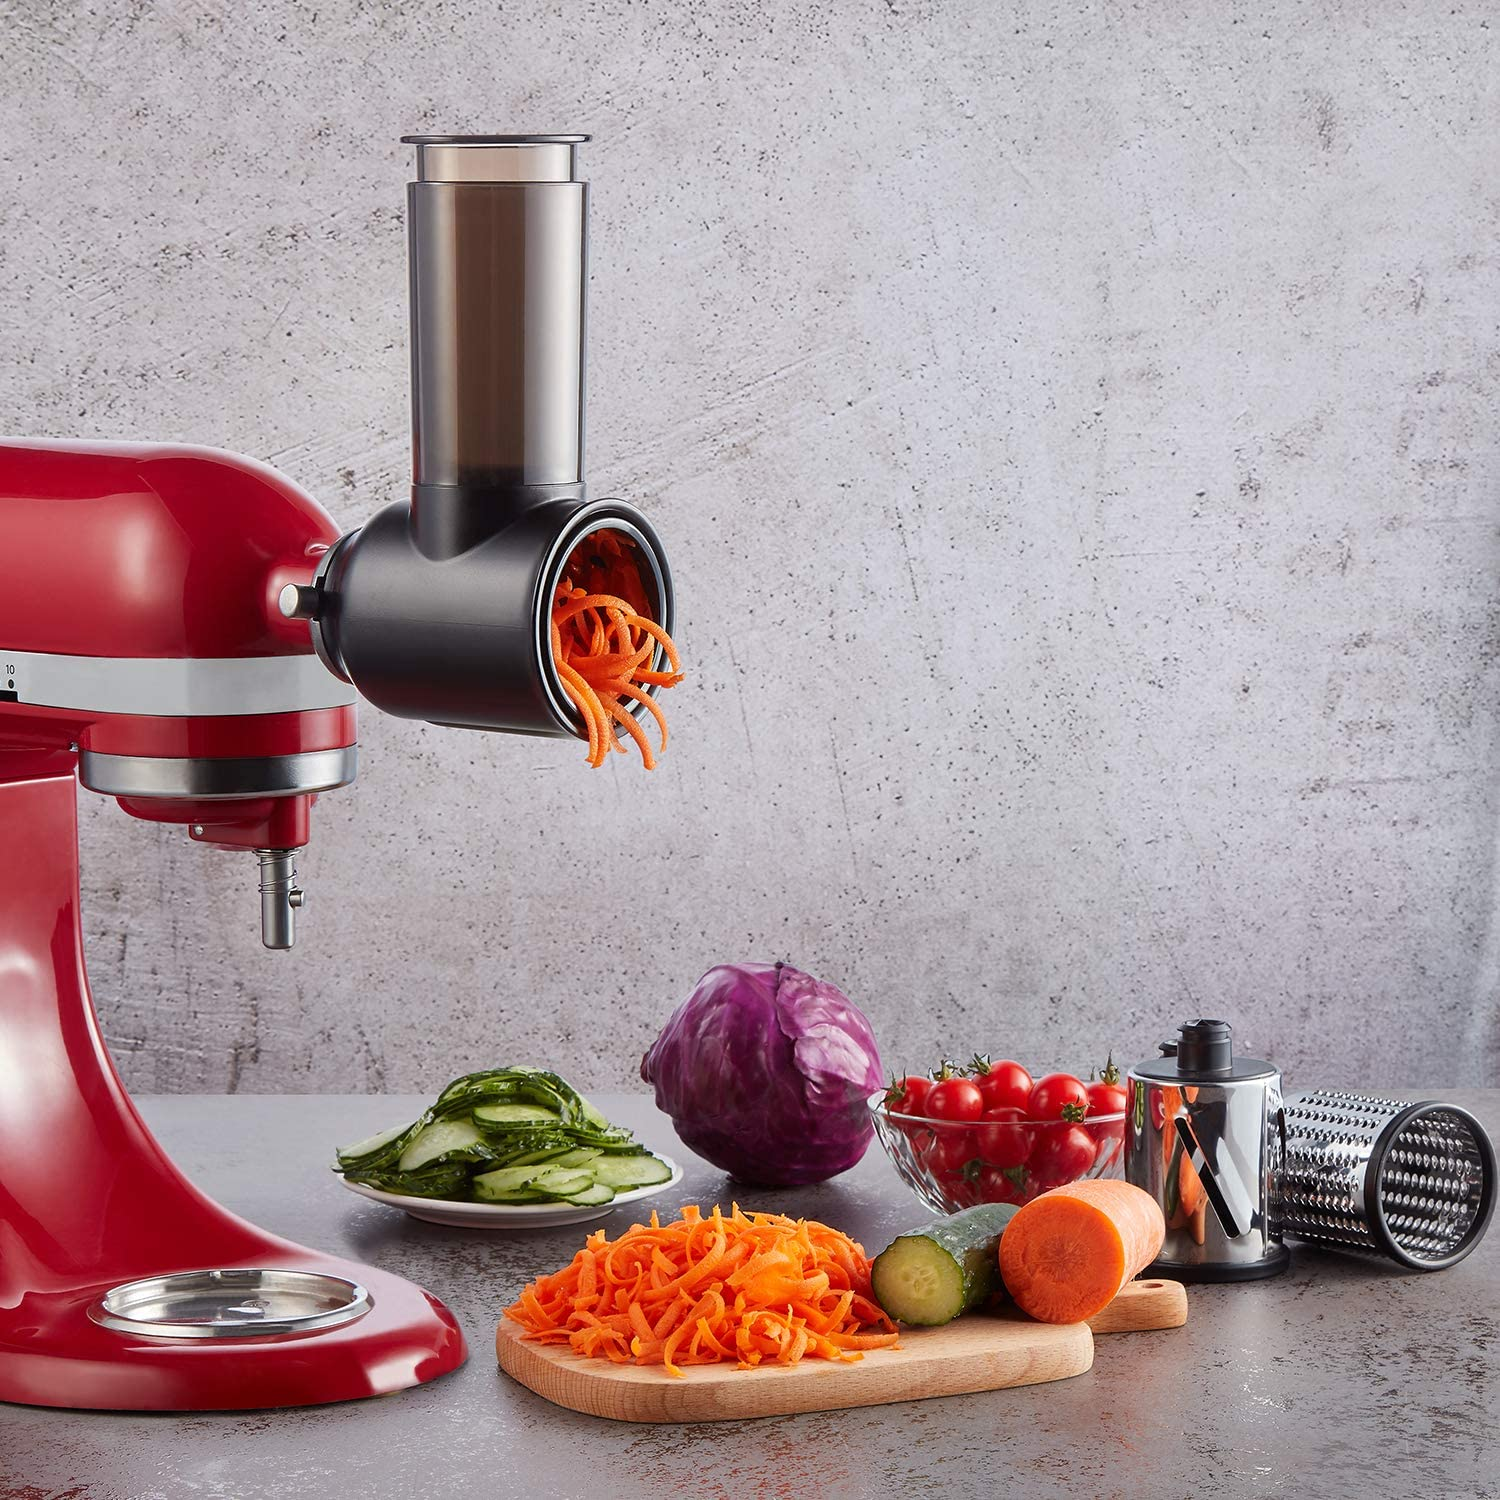 Cheese Grater Shredder Attachments for Kitchenaid Stand Mixer ...